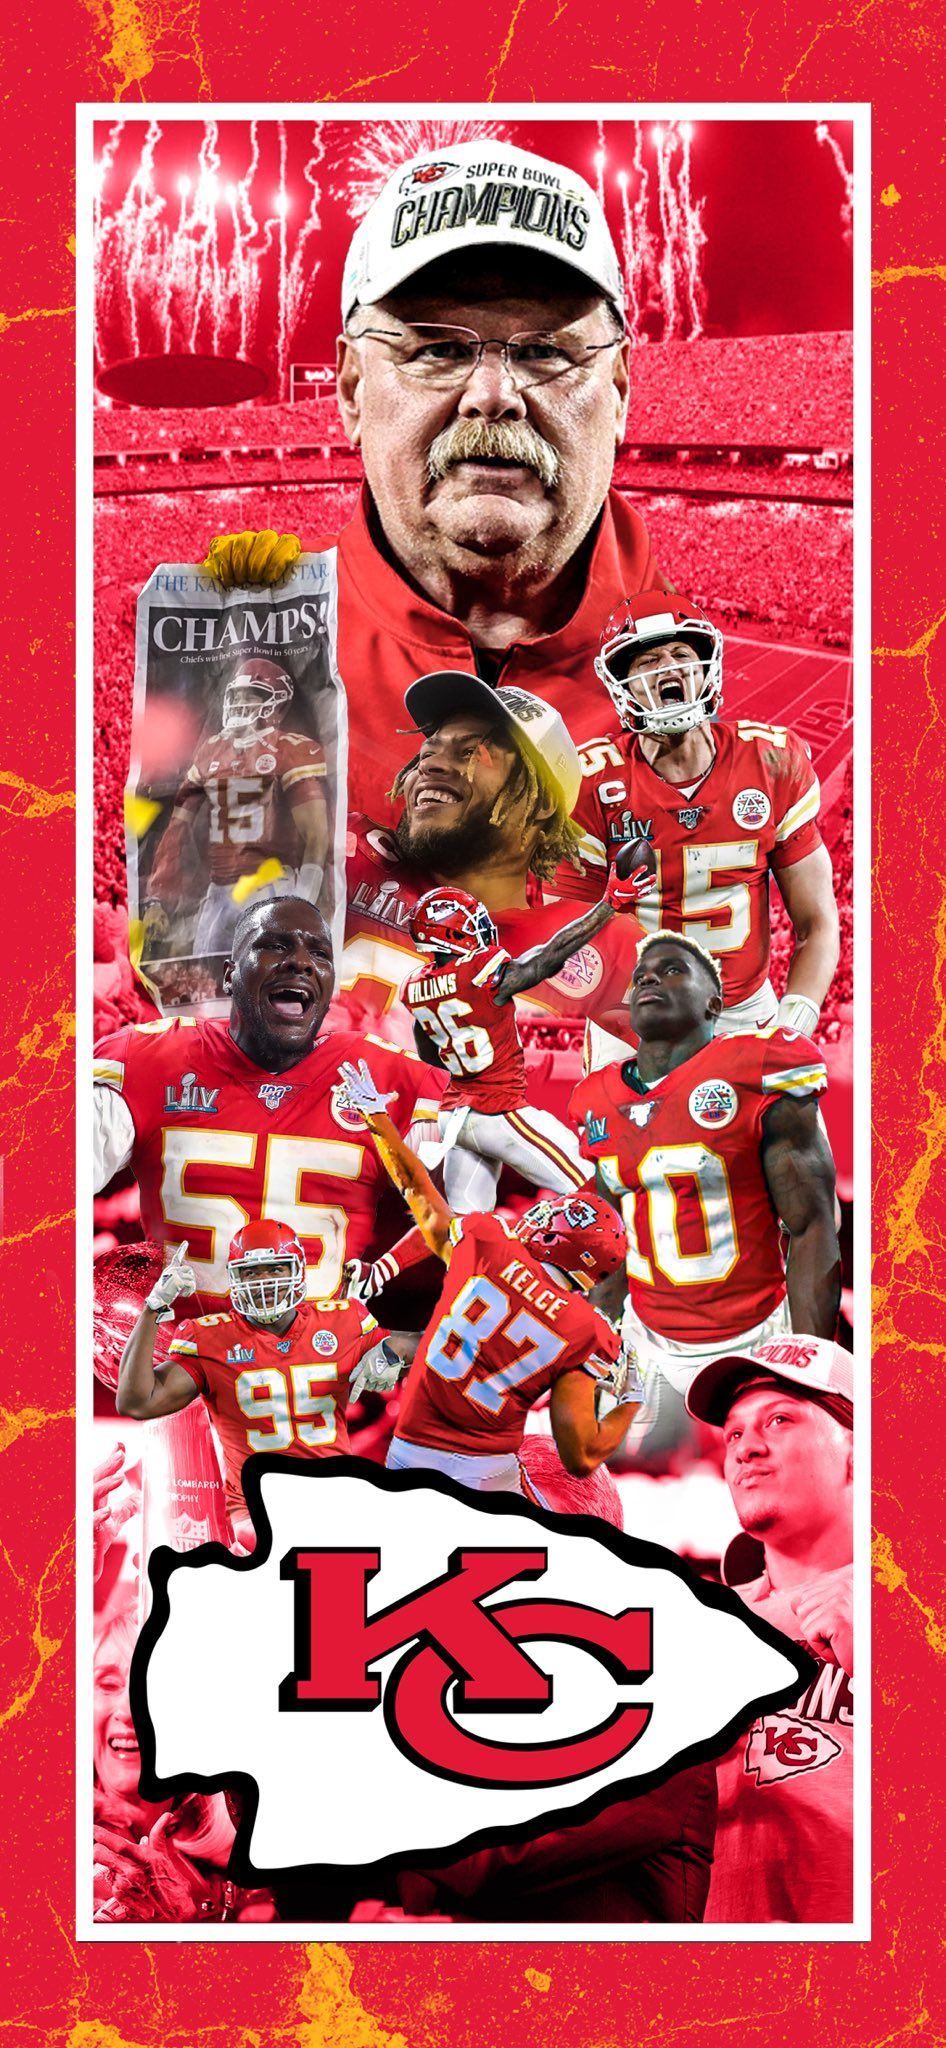 Pin By Tina Fine On Kansas City Chiefs In 2020 Kansas City Chiefs Football Kansas City Chiefs Chiefs Football